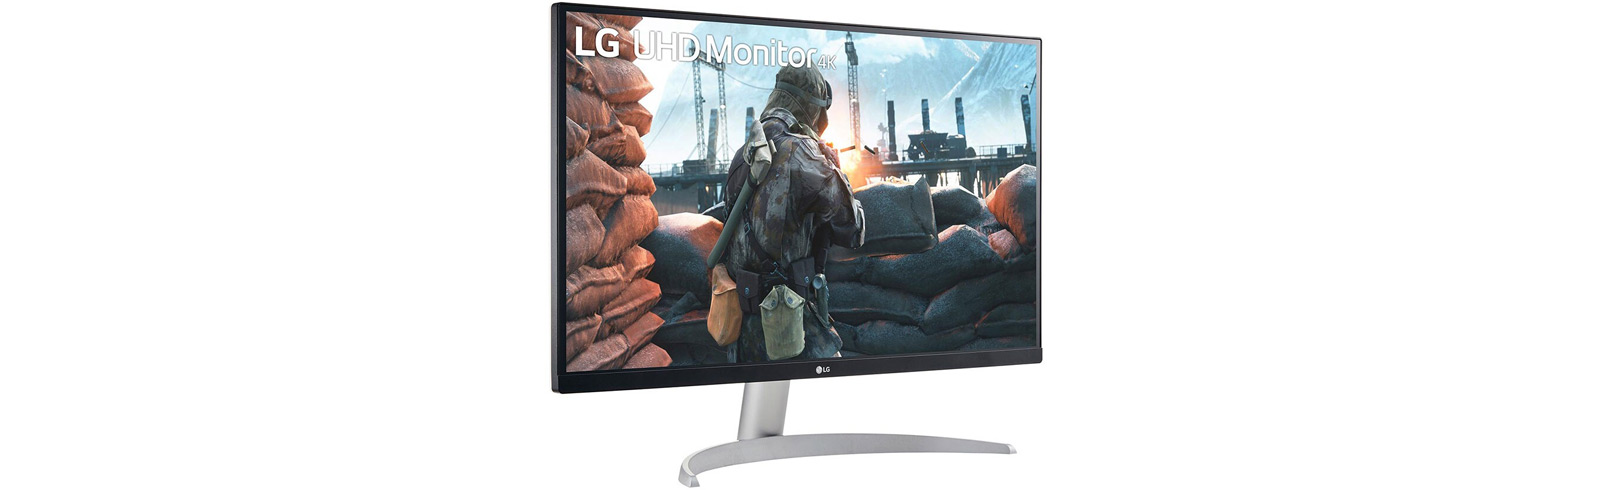 "LG 27UP650 and LG 27UP600 go official with 27"" 4K IPS displays"